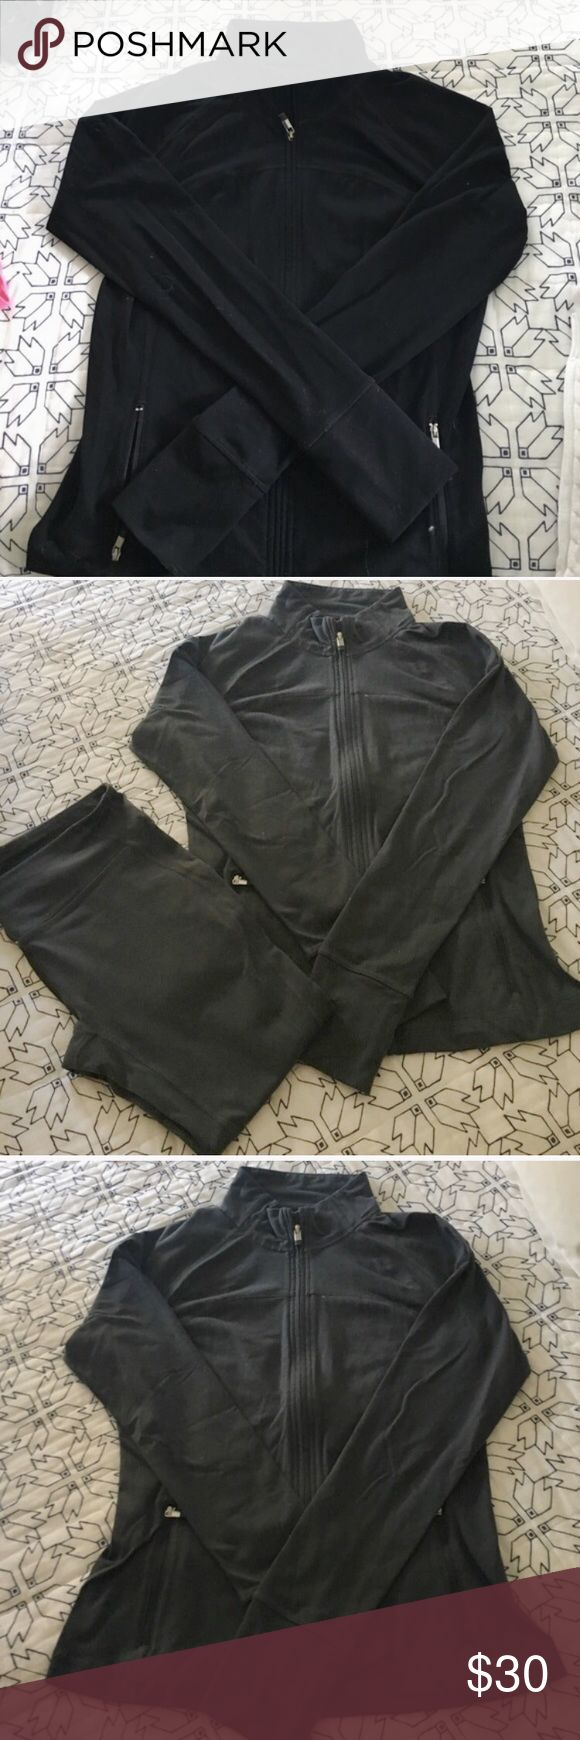 Gap Body Bundle: 2 jackets + 1 pair of pants Gap body zip up jacket in black, Gap body zip up jacket in grey, and matching Gap body capri pants in grey. All are size small. Gently worn in great condition. These jackets are a perfect dupe for the Lululemon define jacket! GAP Pants Track Pants & Joggers